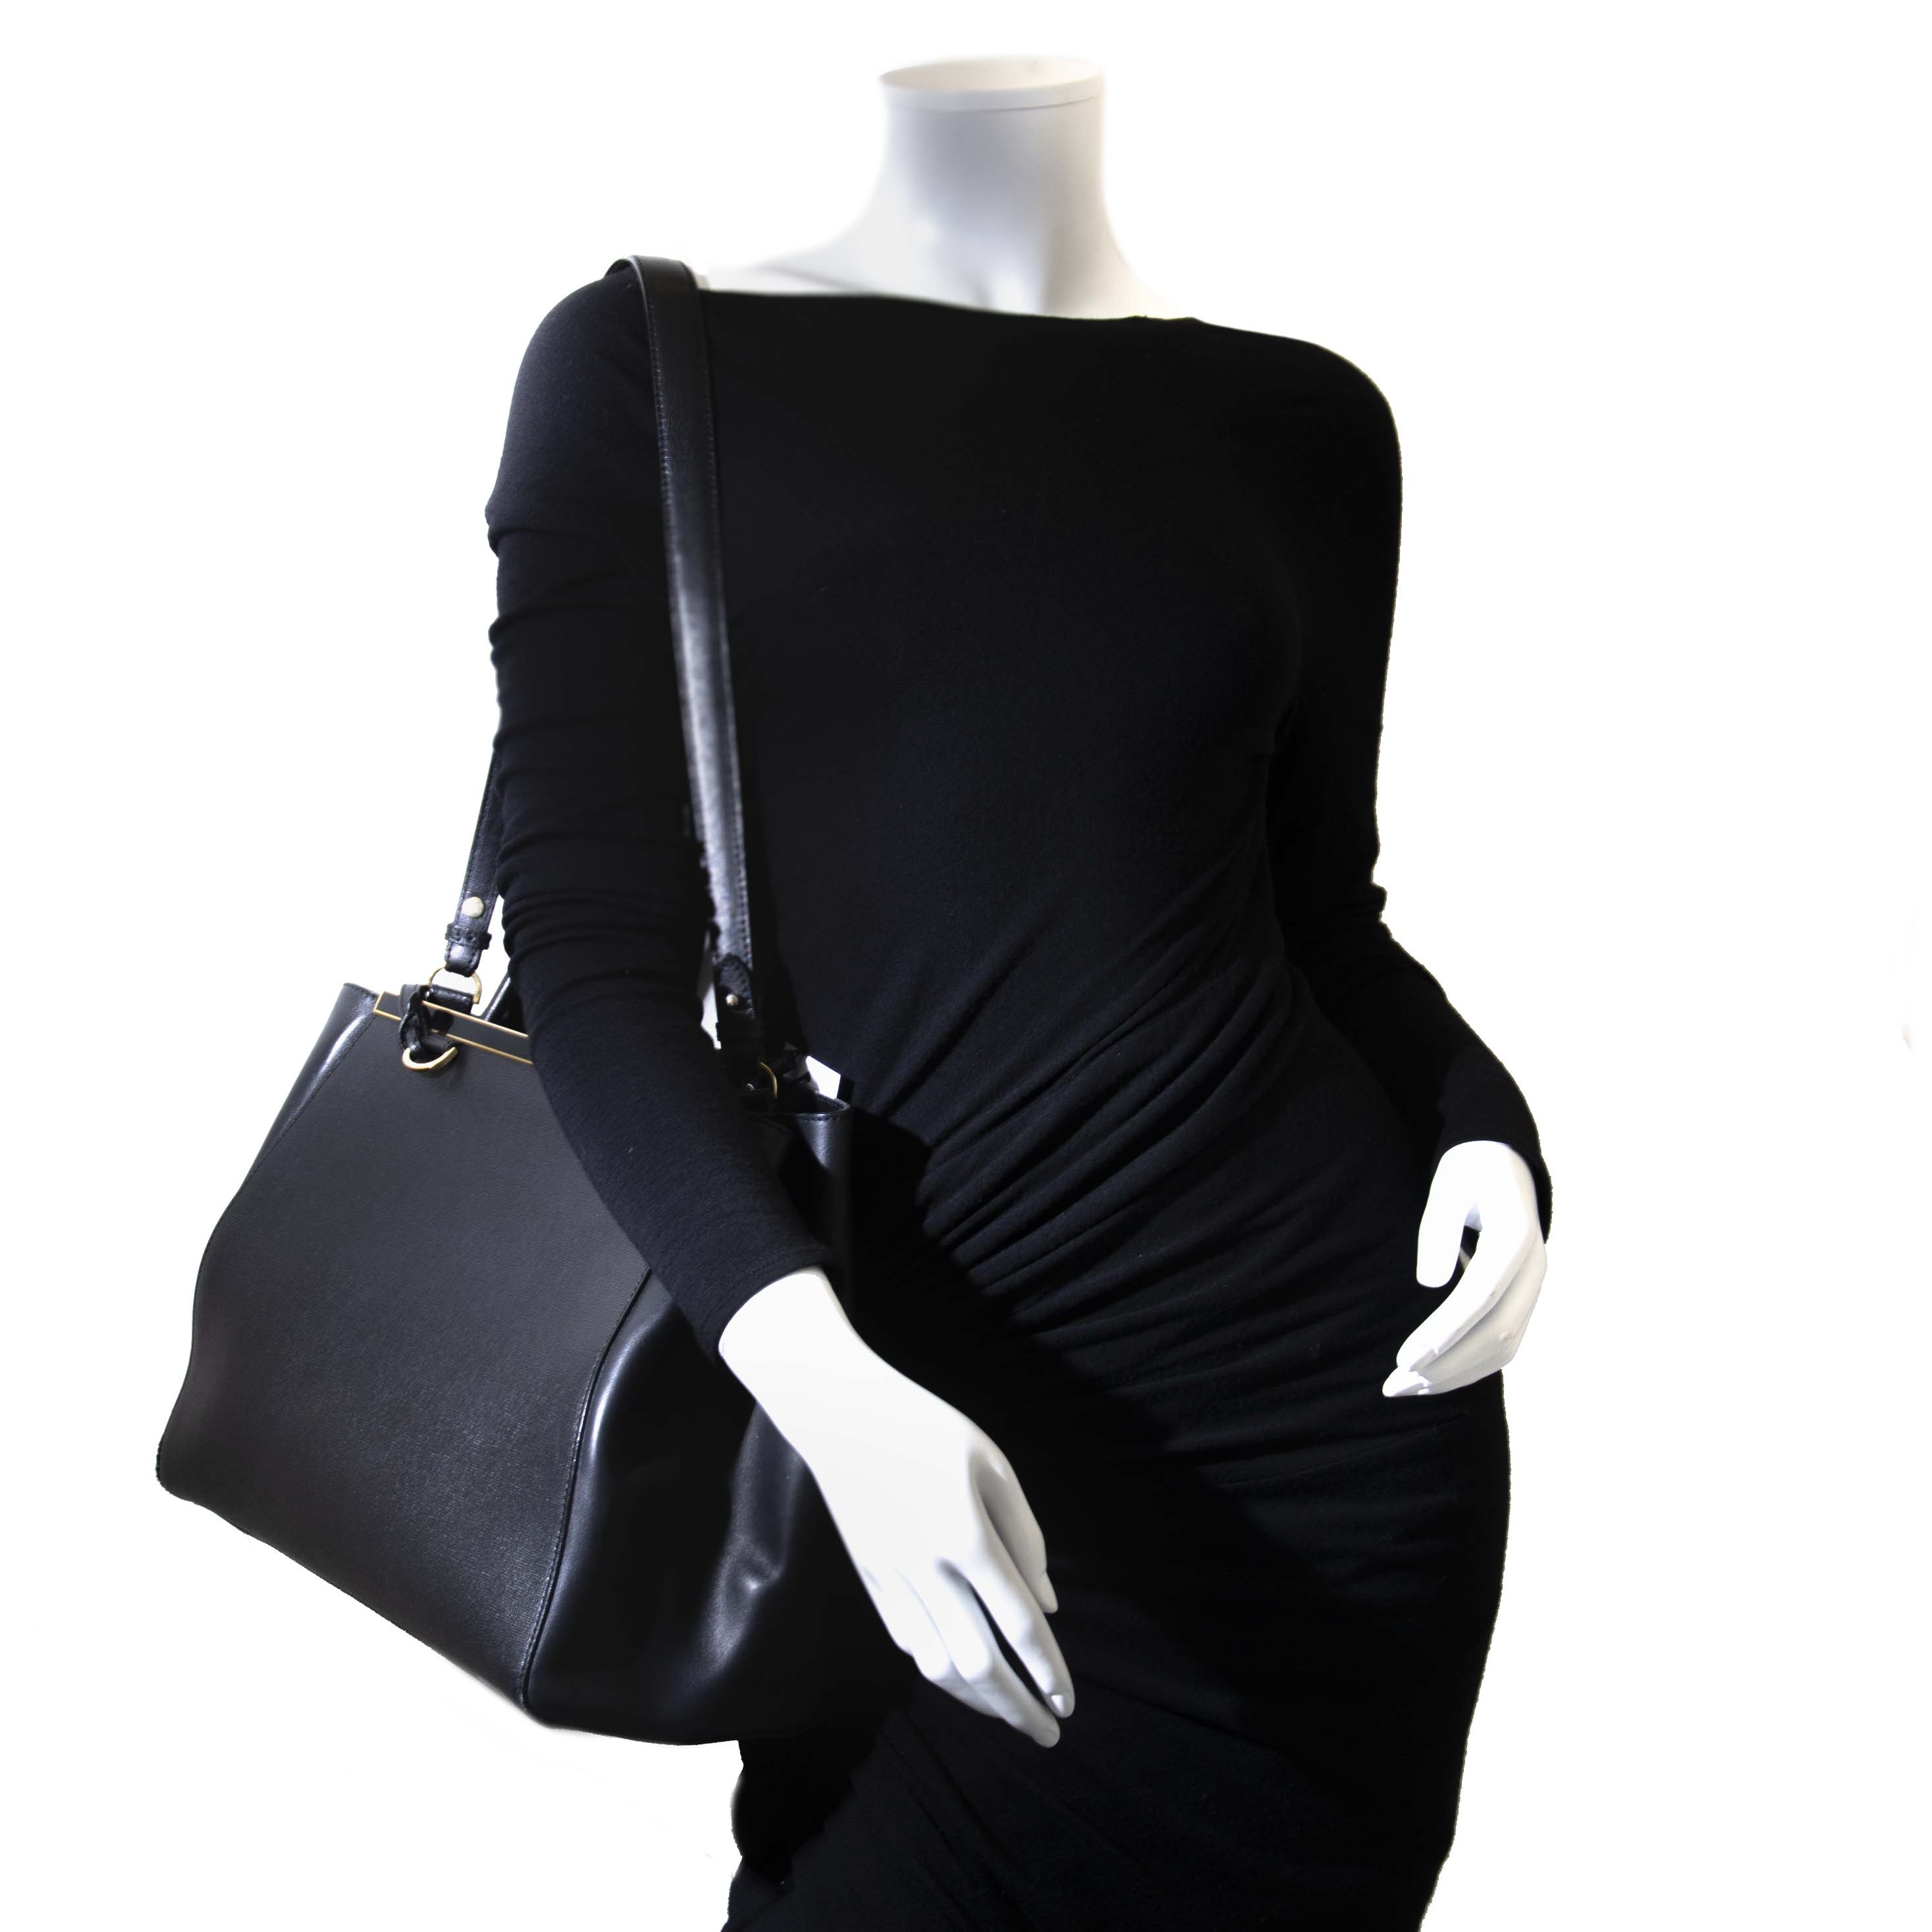 op zoek naar een Fendi 2Jours Black Medium Textured-Leather Top Handle? vindt al uw designer handtassen bij labellov.com